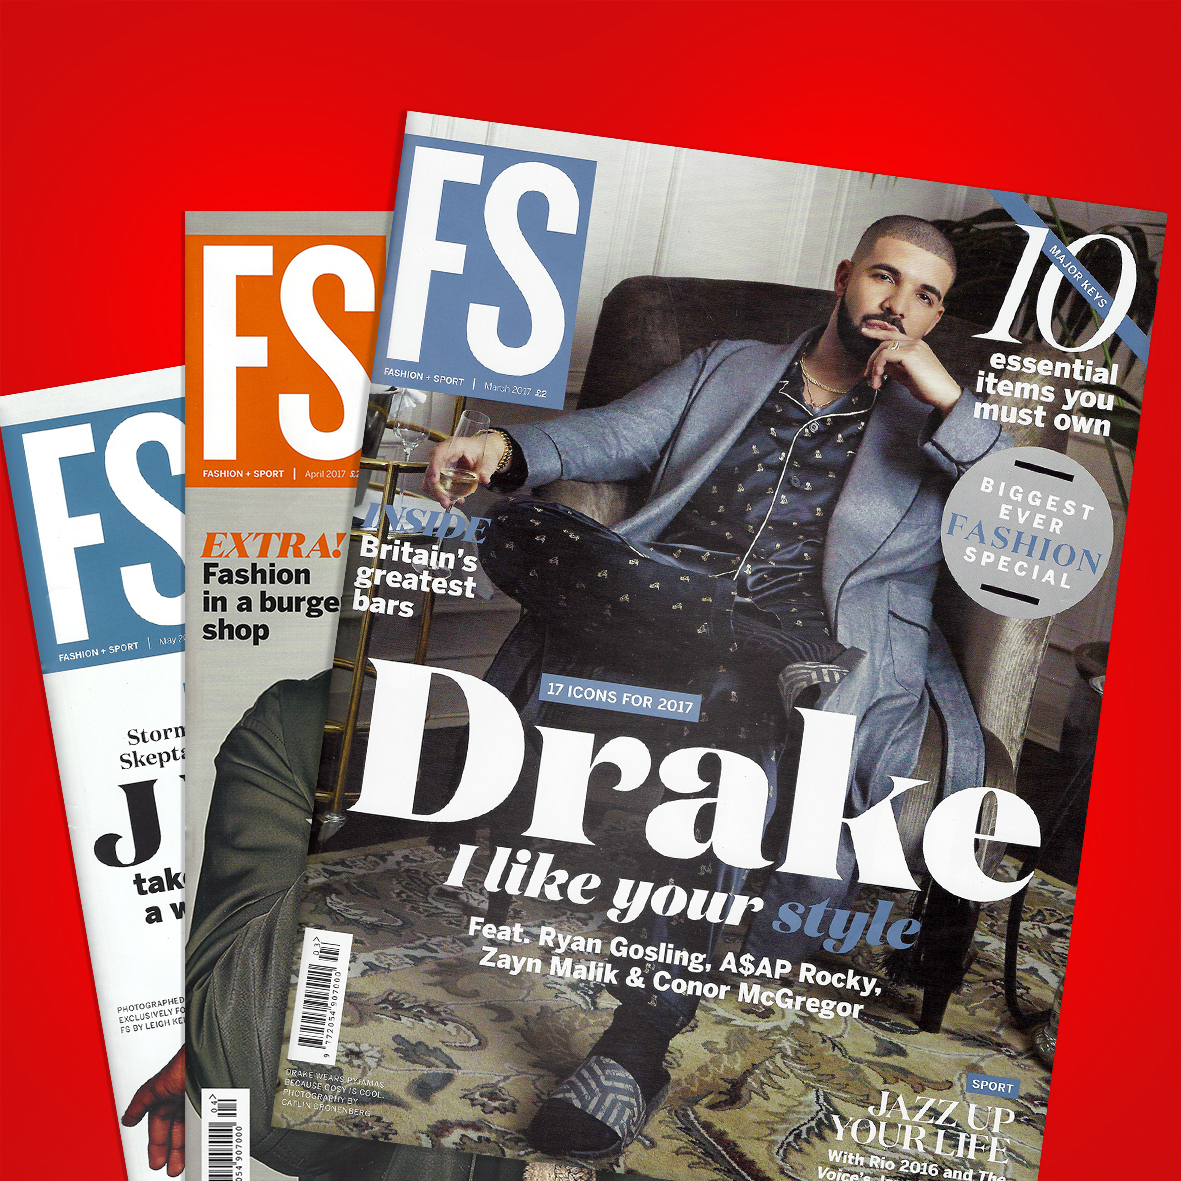 fs new covers Square-web.jpg